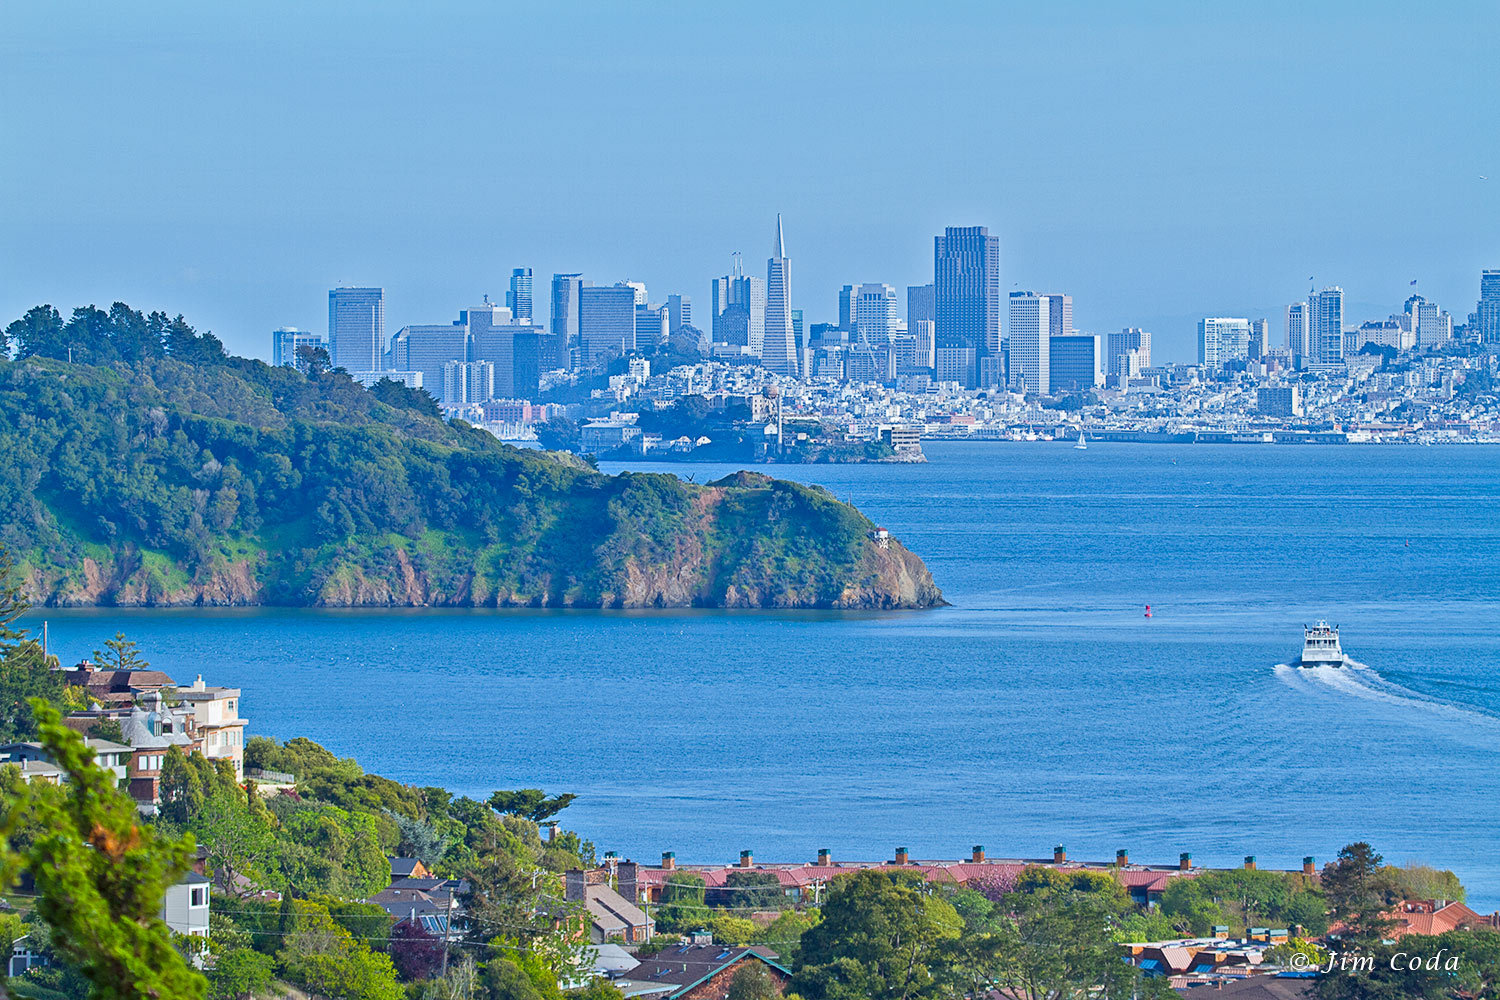 San Francisco Skyline from Tiburon, California